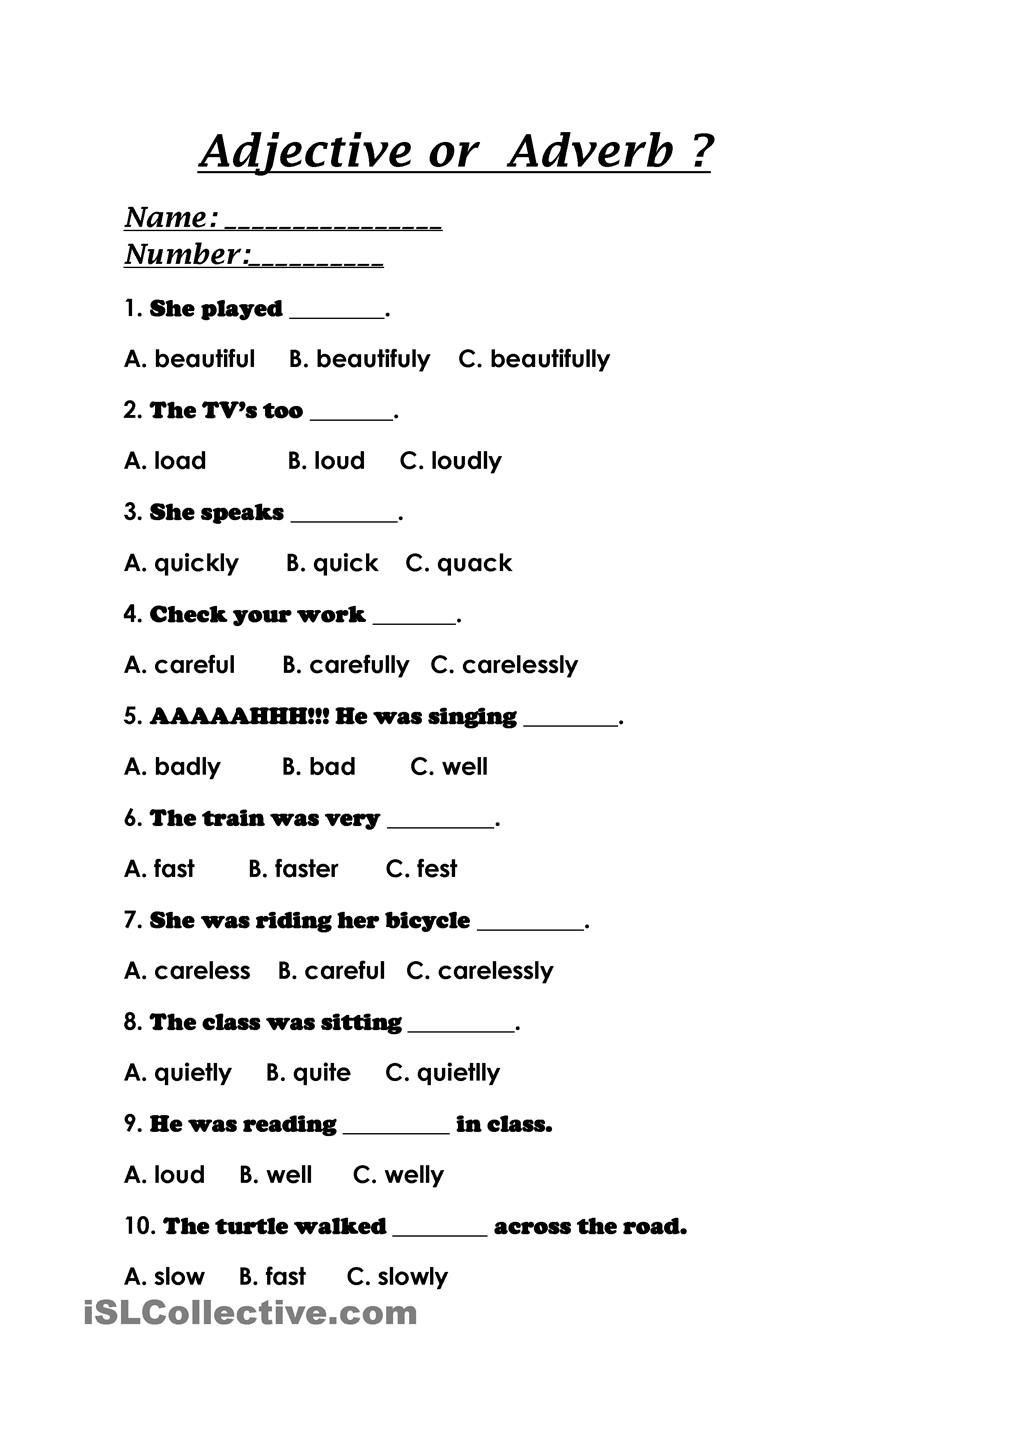 4th Grade Adverb Worksheets Adjective or Adverb